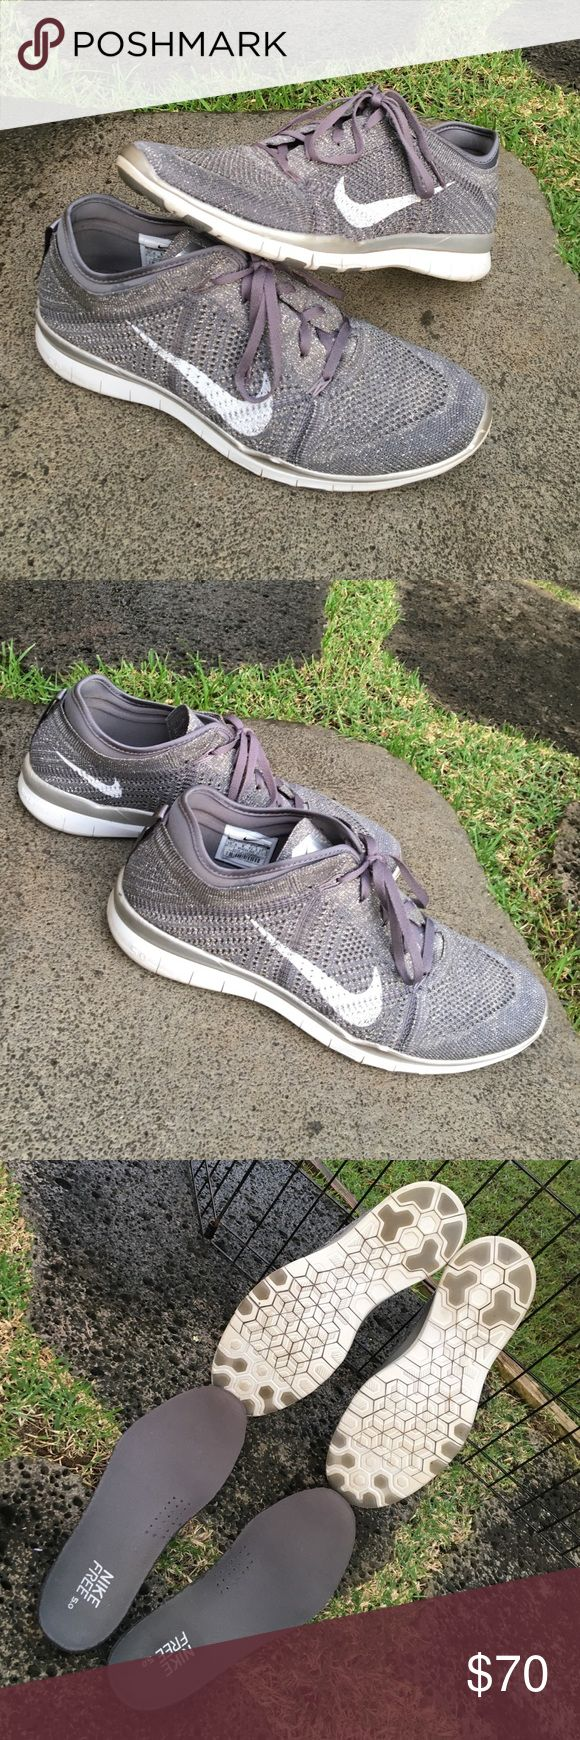 Nike Free Flyknit 5.0 TR. Gray & Silver, size 10.5 Women's Nike Flyknit/Free 5.0 shoes, size 10.5 (women's sizing). Perfect for running or training. Gray with silver sparkles, very pretty and matches every gym outfit. Pre-loved but still in great condition! Nike Shoes Athletic Shoes